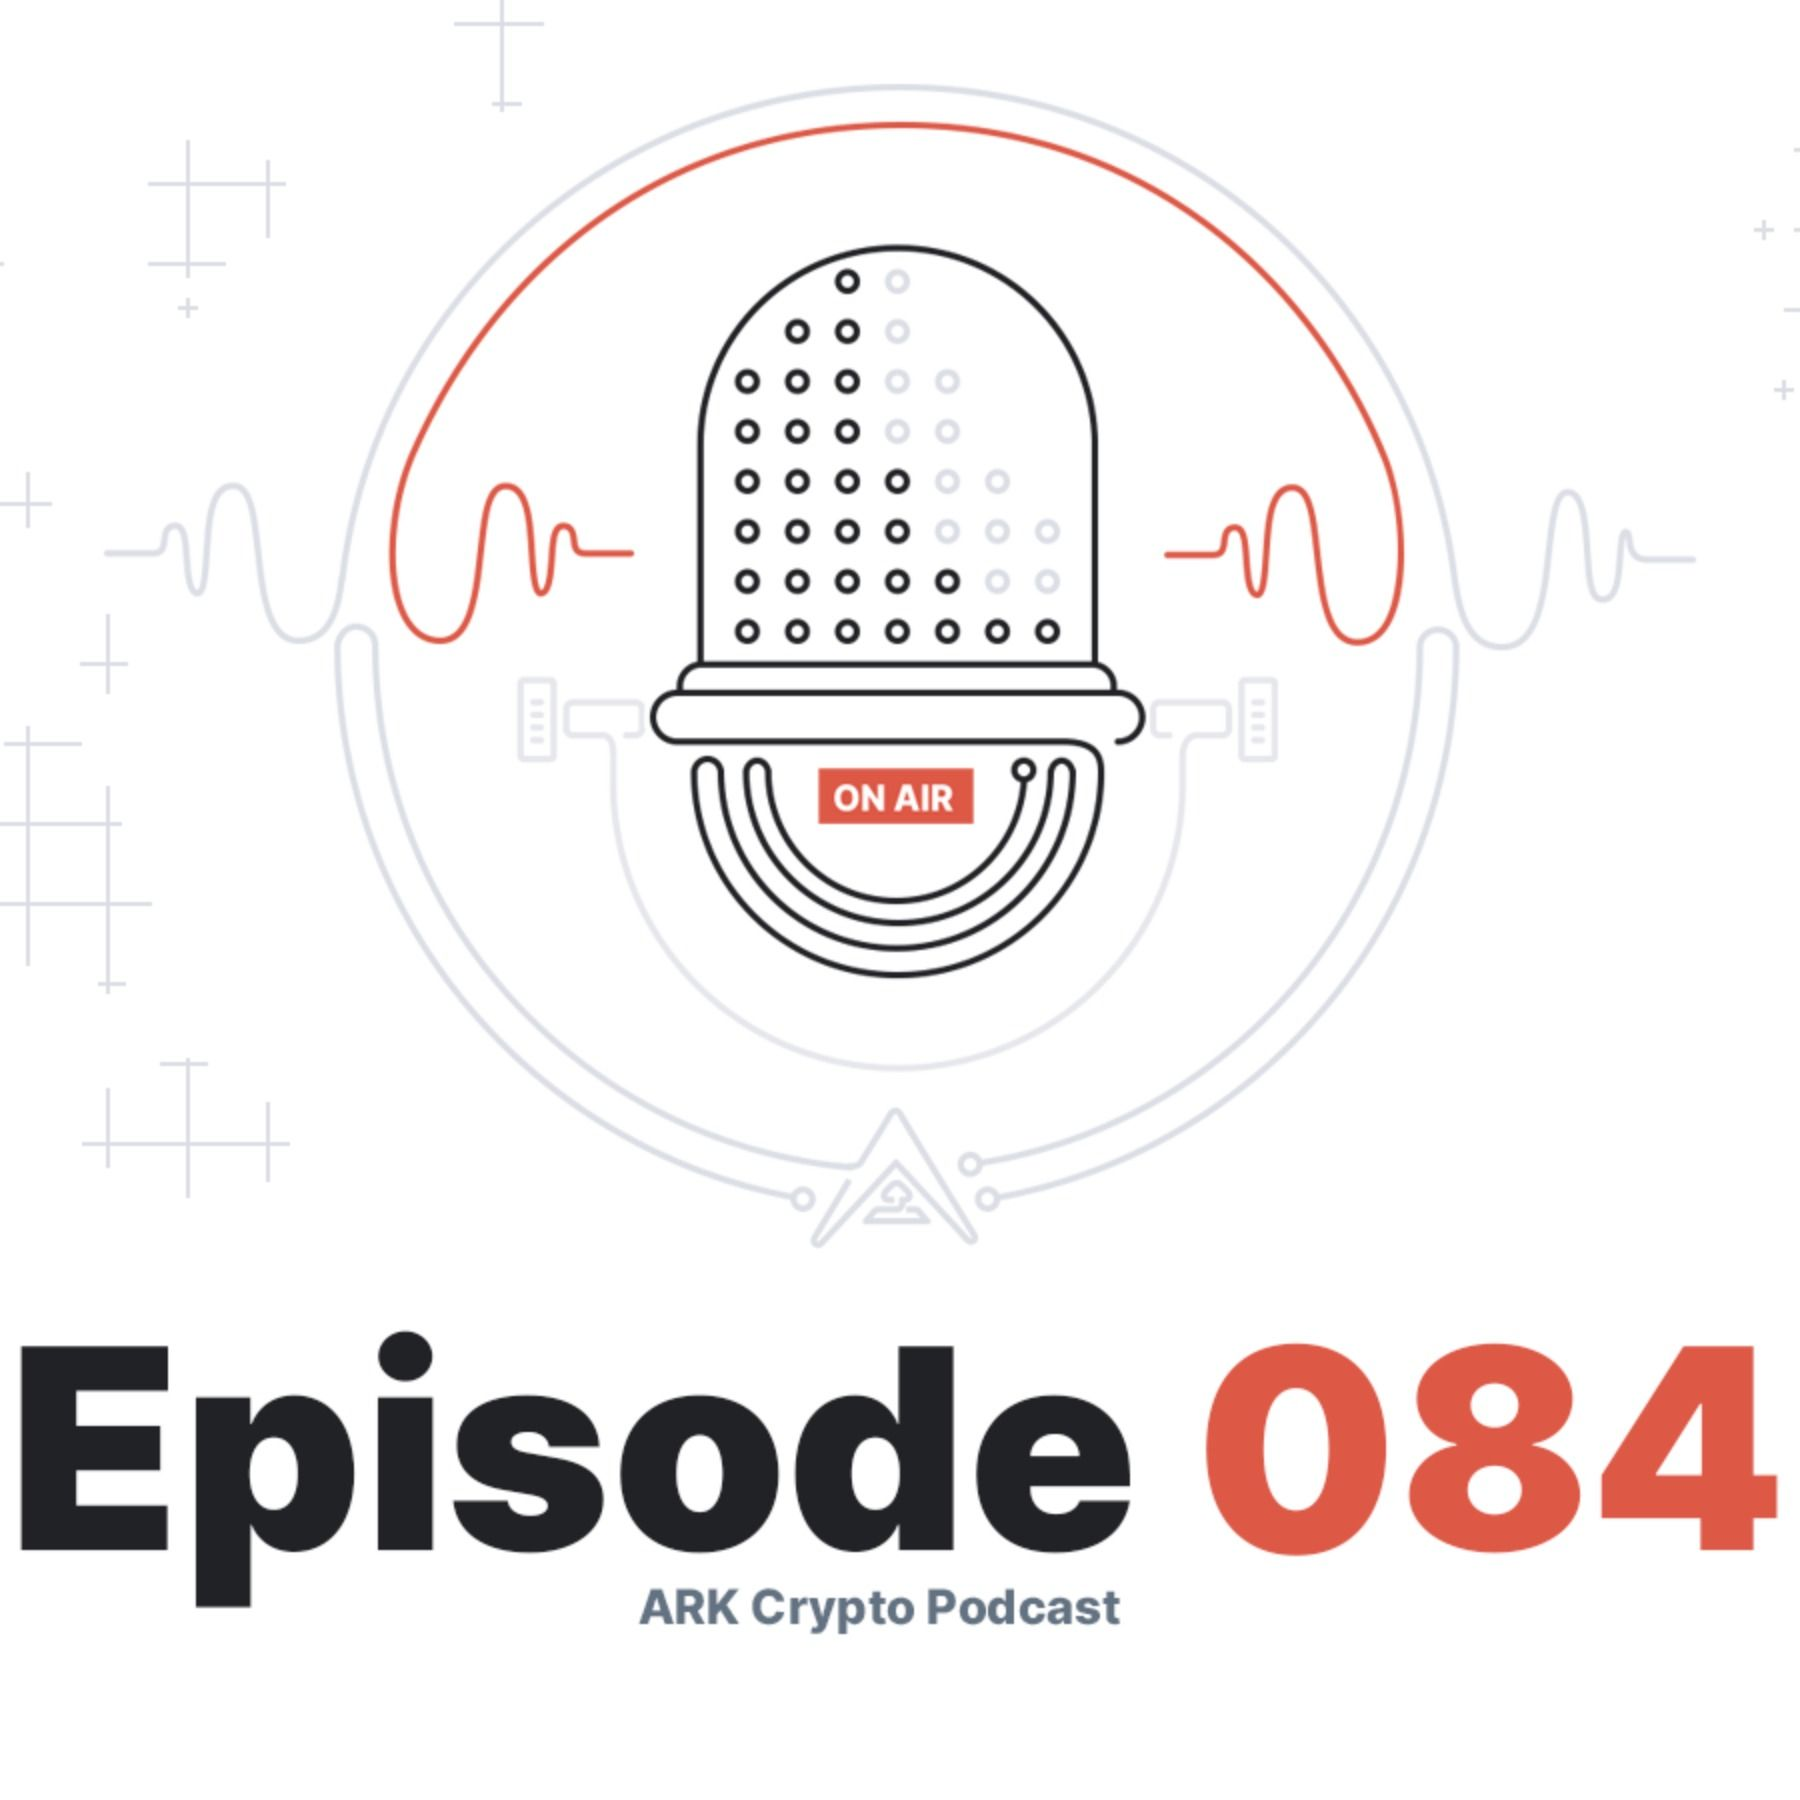 ARK Crypto Podcast #084 - Reacting to ARK Descriptions on Crypto Directory Websites (Part 2)